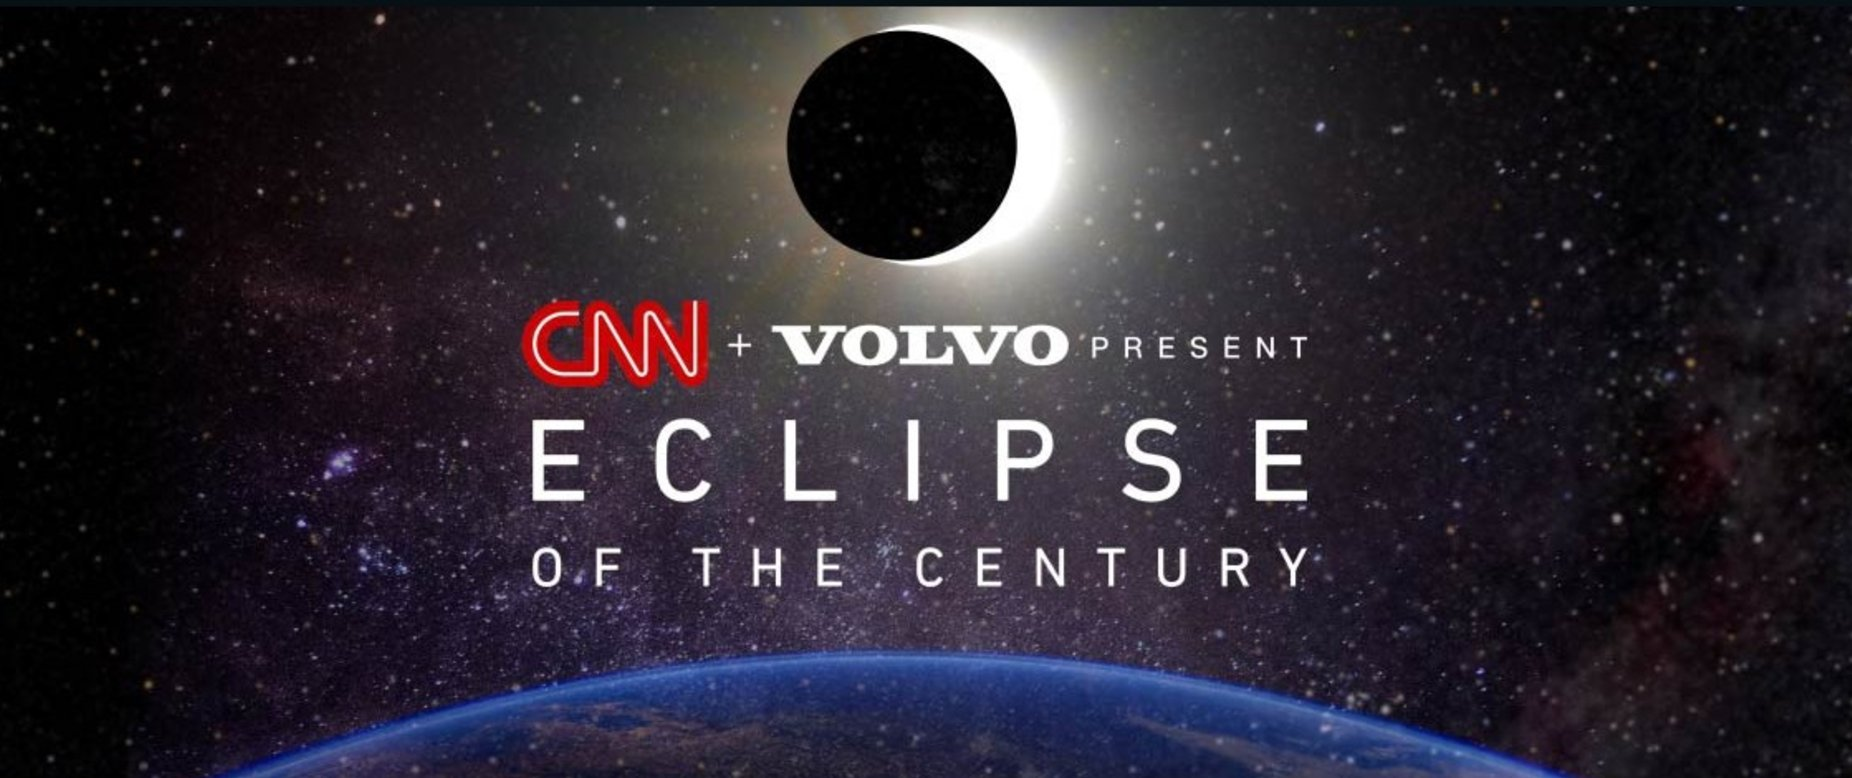 How to watch 'The Eclipse of the Century' in virtual reality #Eclipse2017 #CNNeclipse https://t.co/YGNdz7pHFG https://t.co/Rzn812RVgU